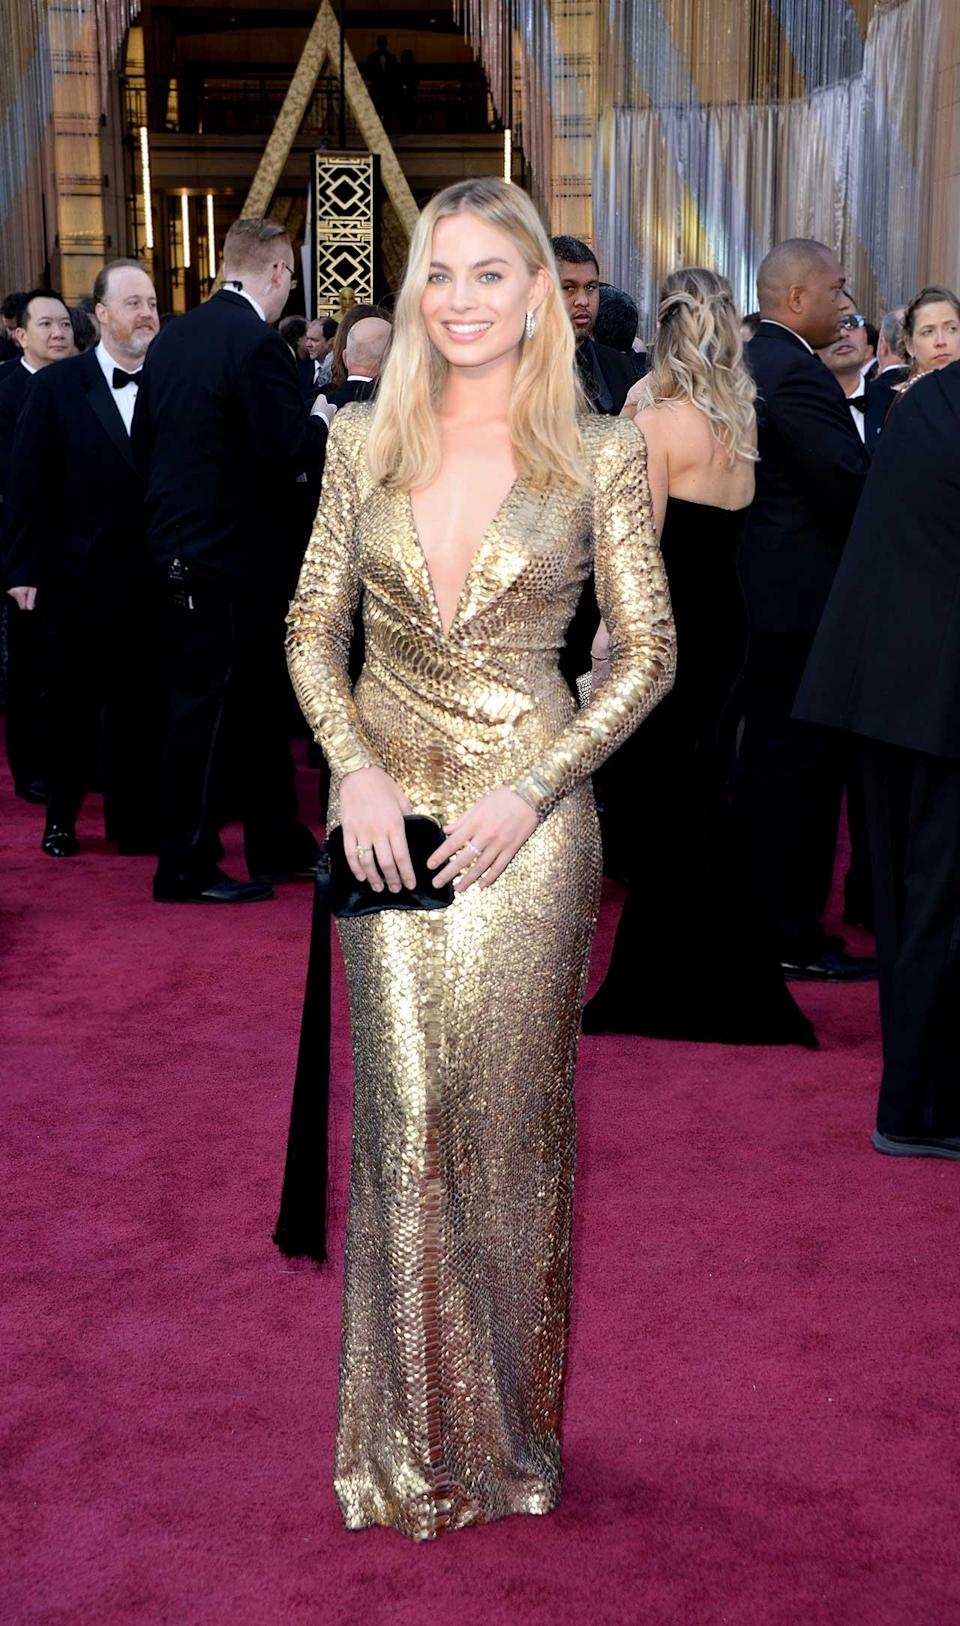 <h2>In Tom Ford</h2> <p>At the Academy Awards in Los Angeles, 2016</p> <h4>Getty Images</h4>